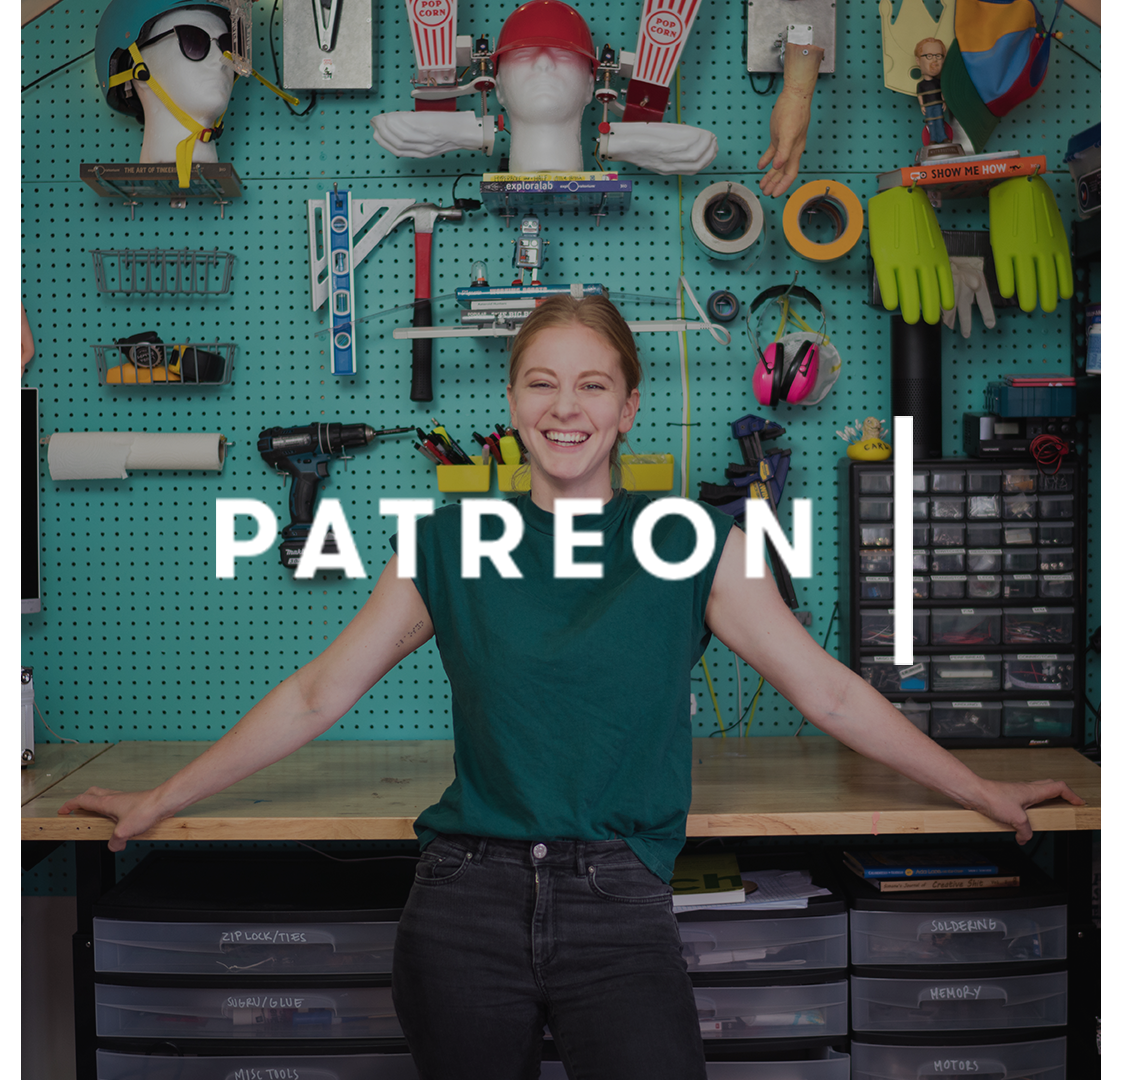 Patreon4.png